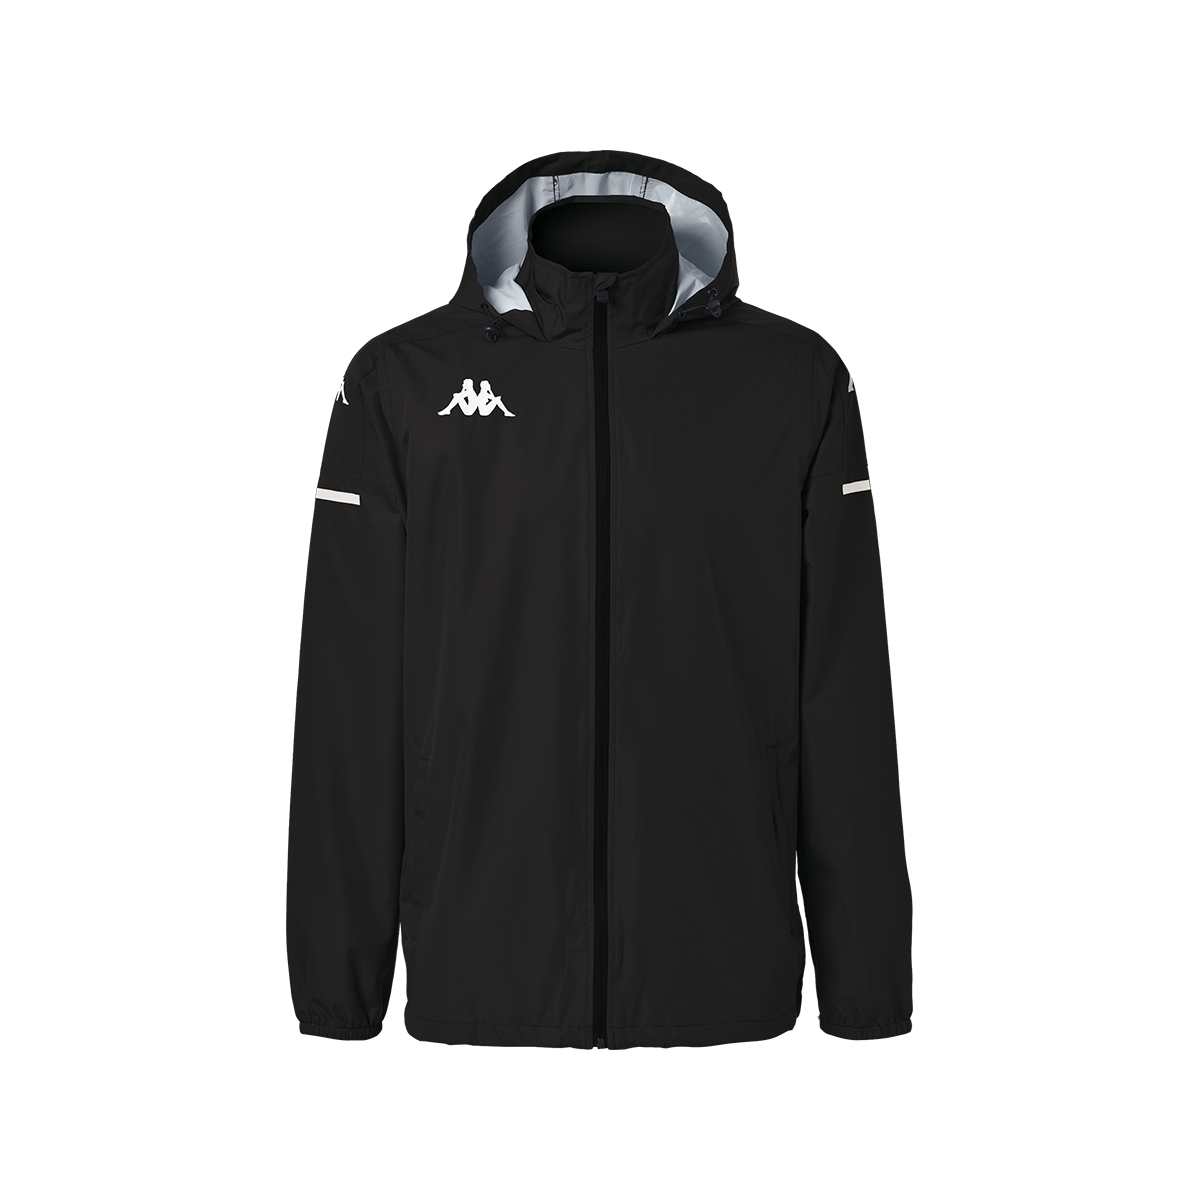 Kappa Adverzip Pro 4 Training Rain Jacket - Black/White